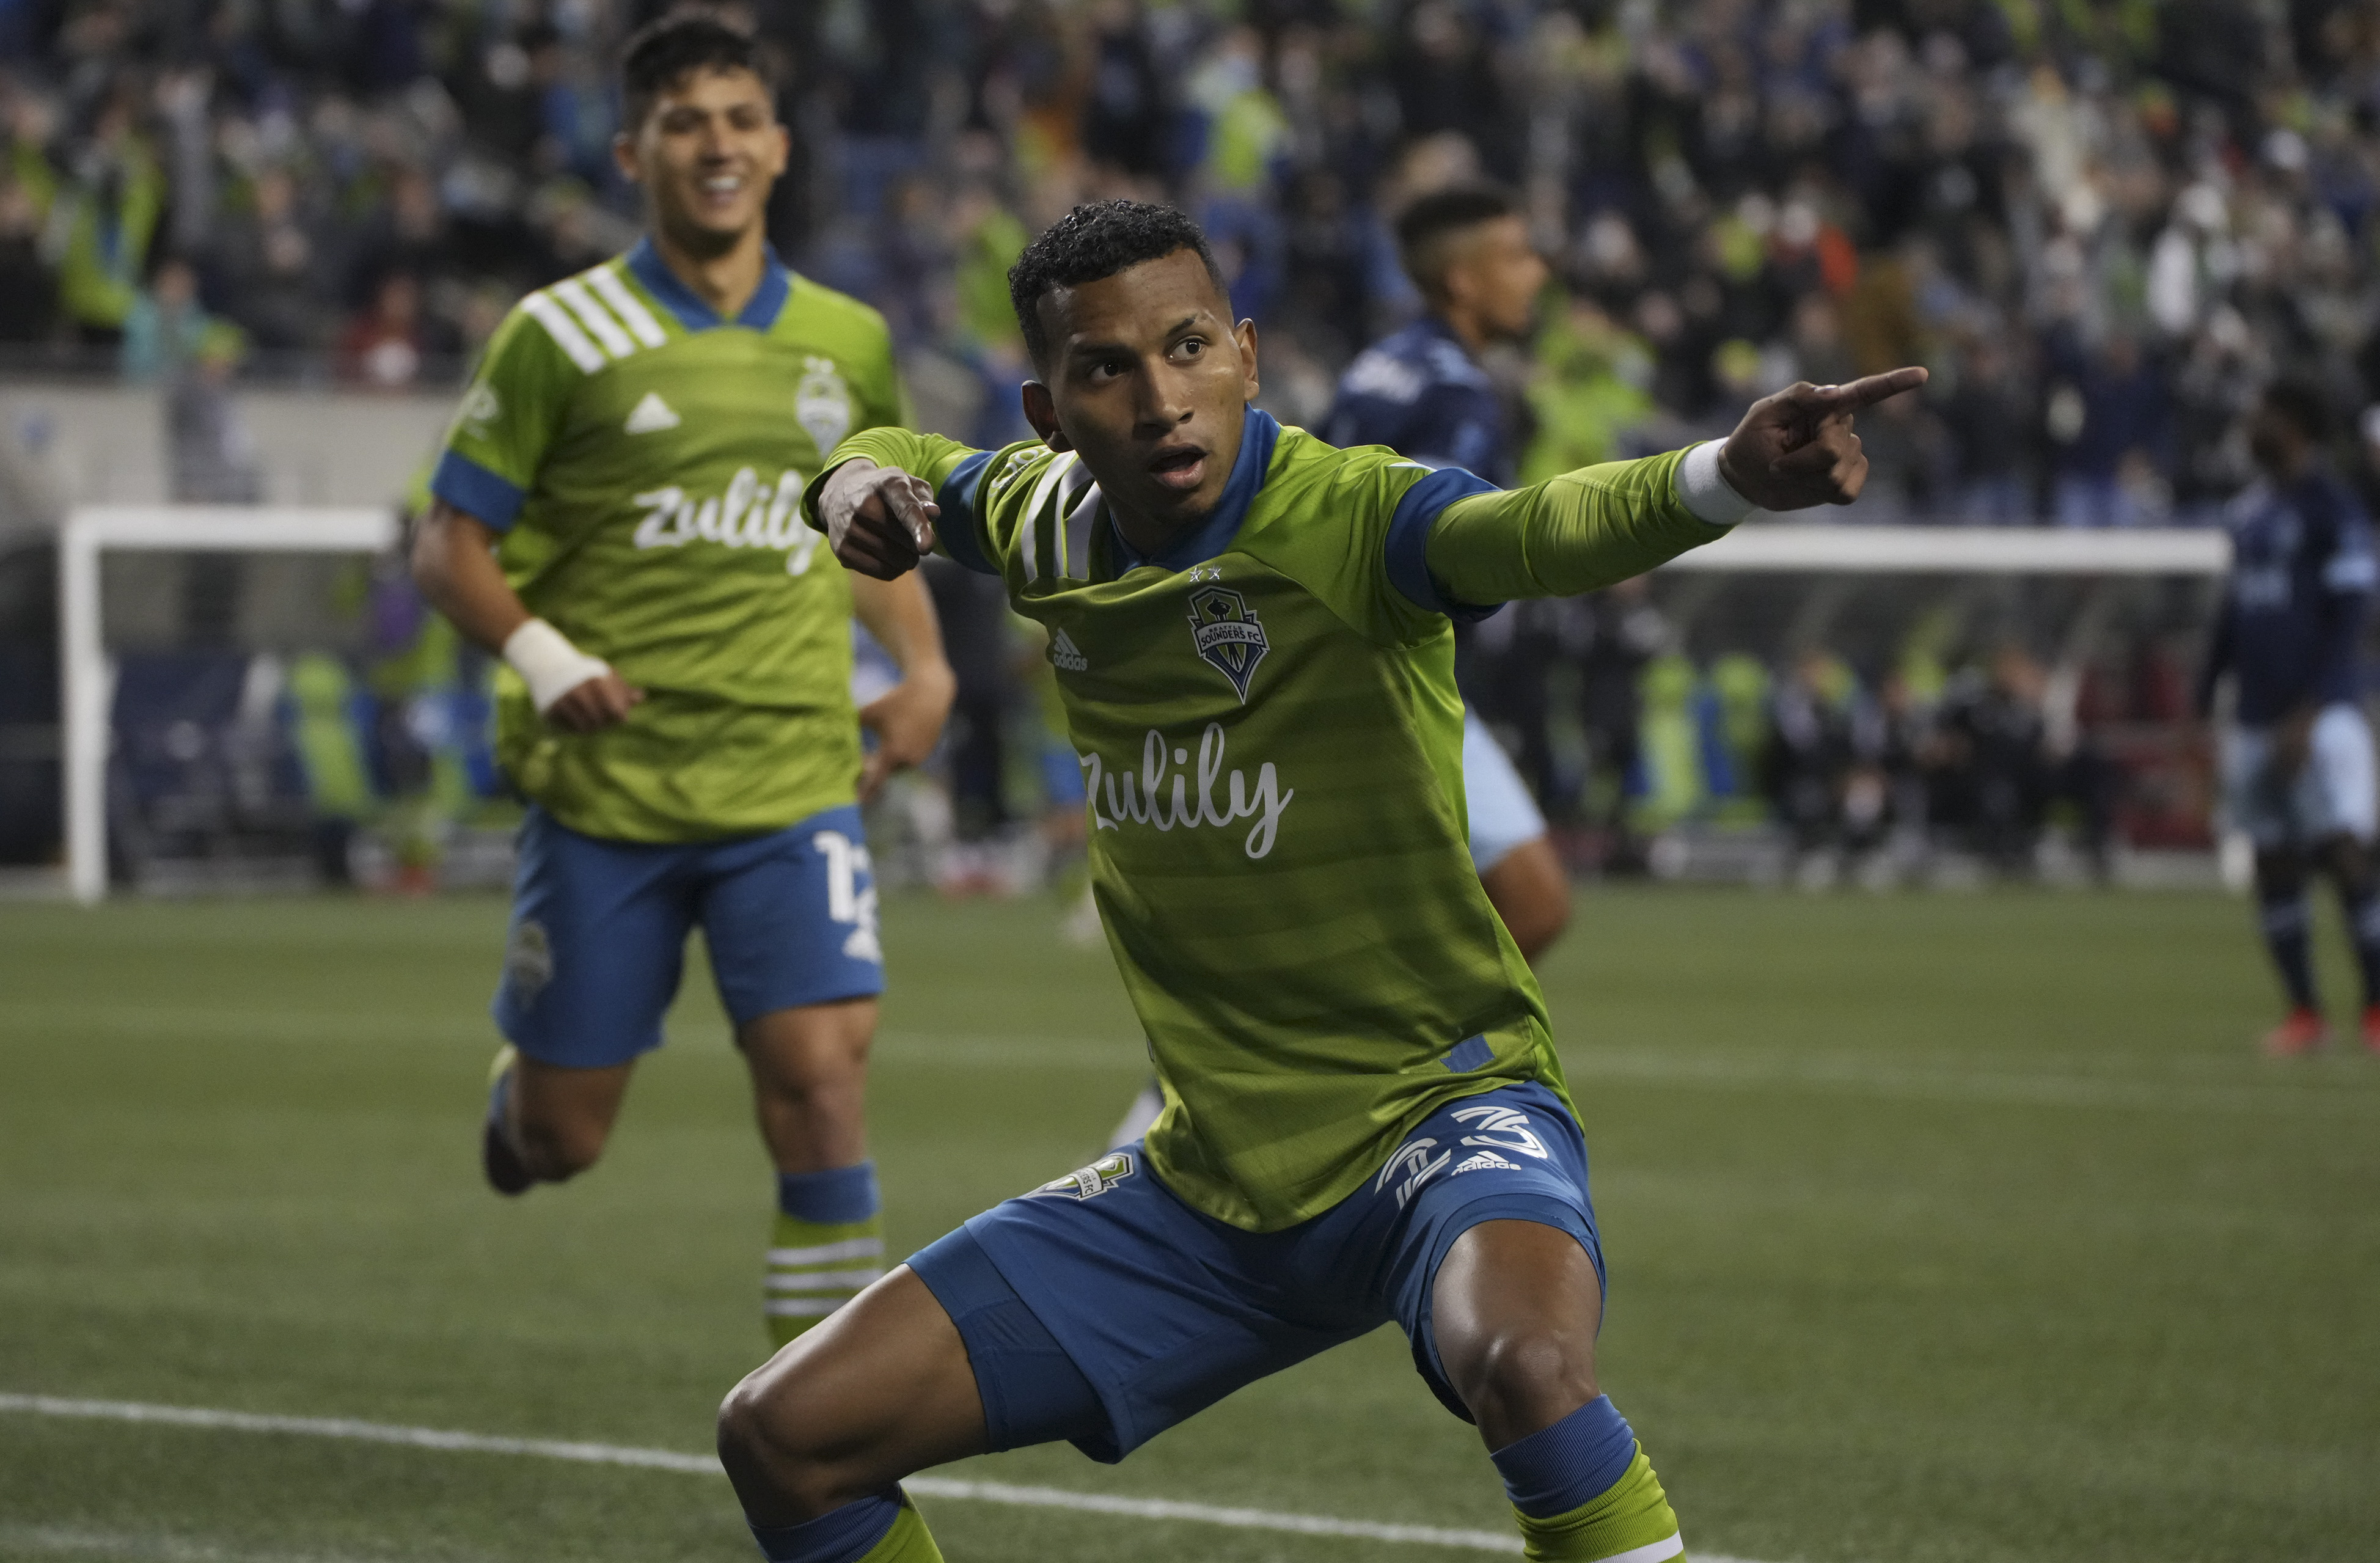 SOCCER: OCT 09 MLS - Vancouver Whitecaps at Seattle Sounders